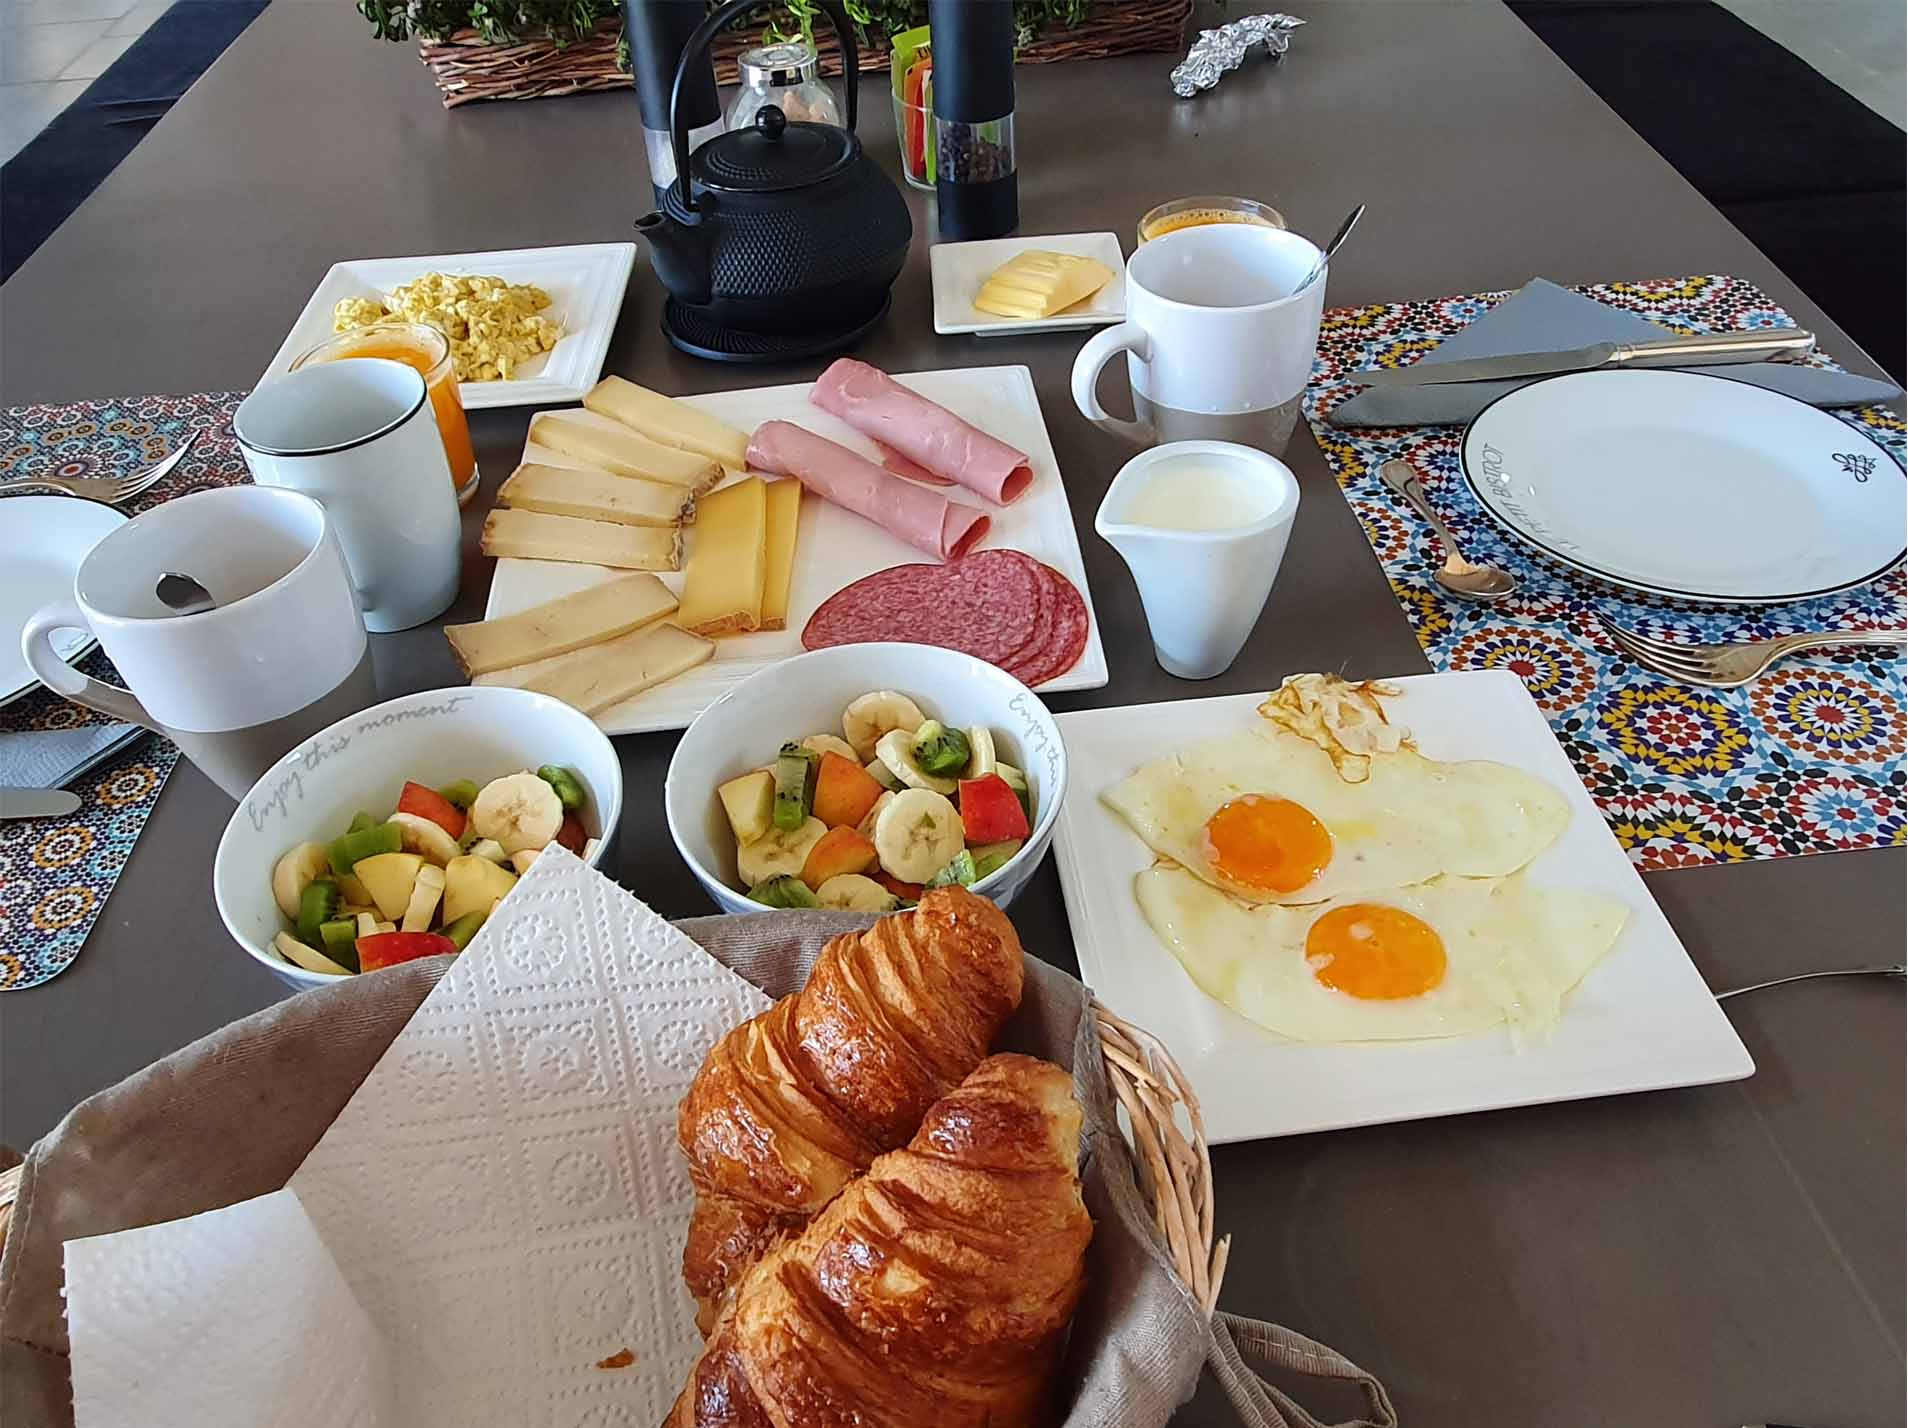 Lovely breakfast at La Magie des Reves